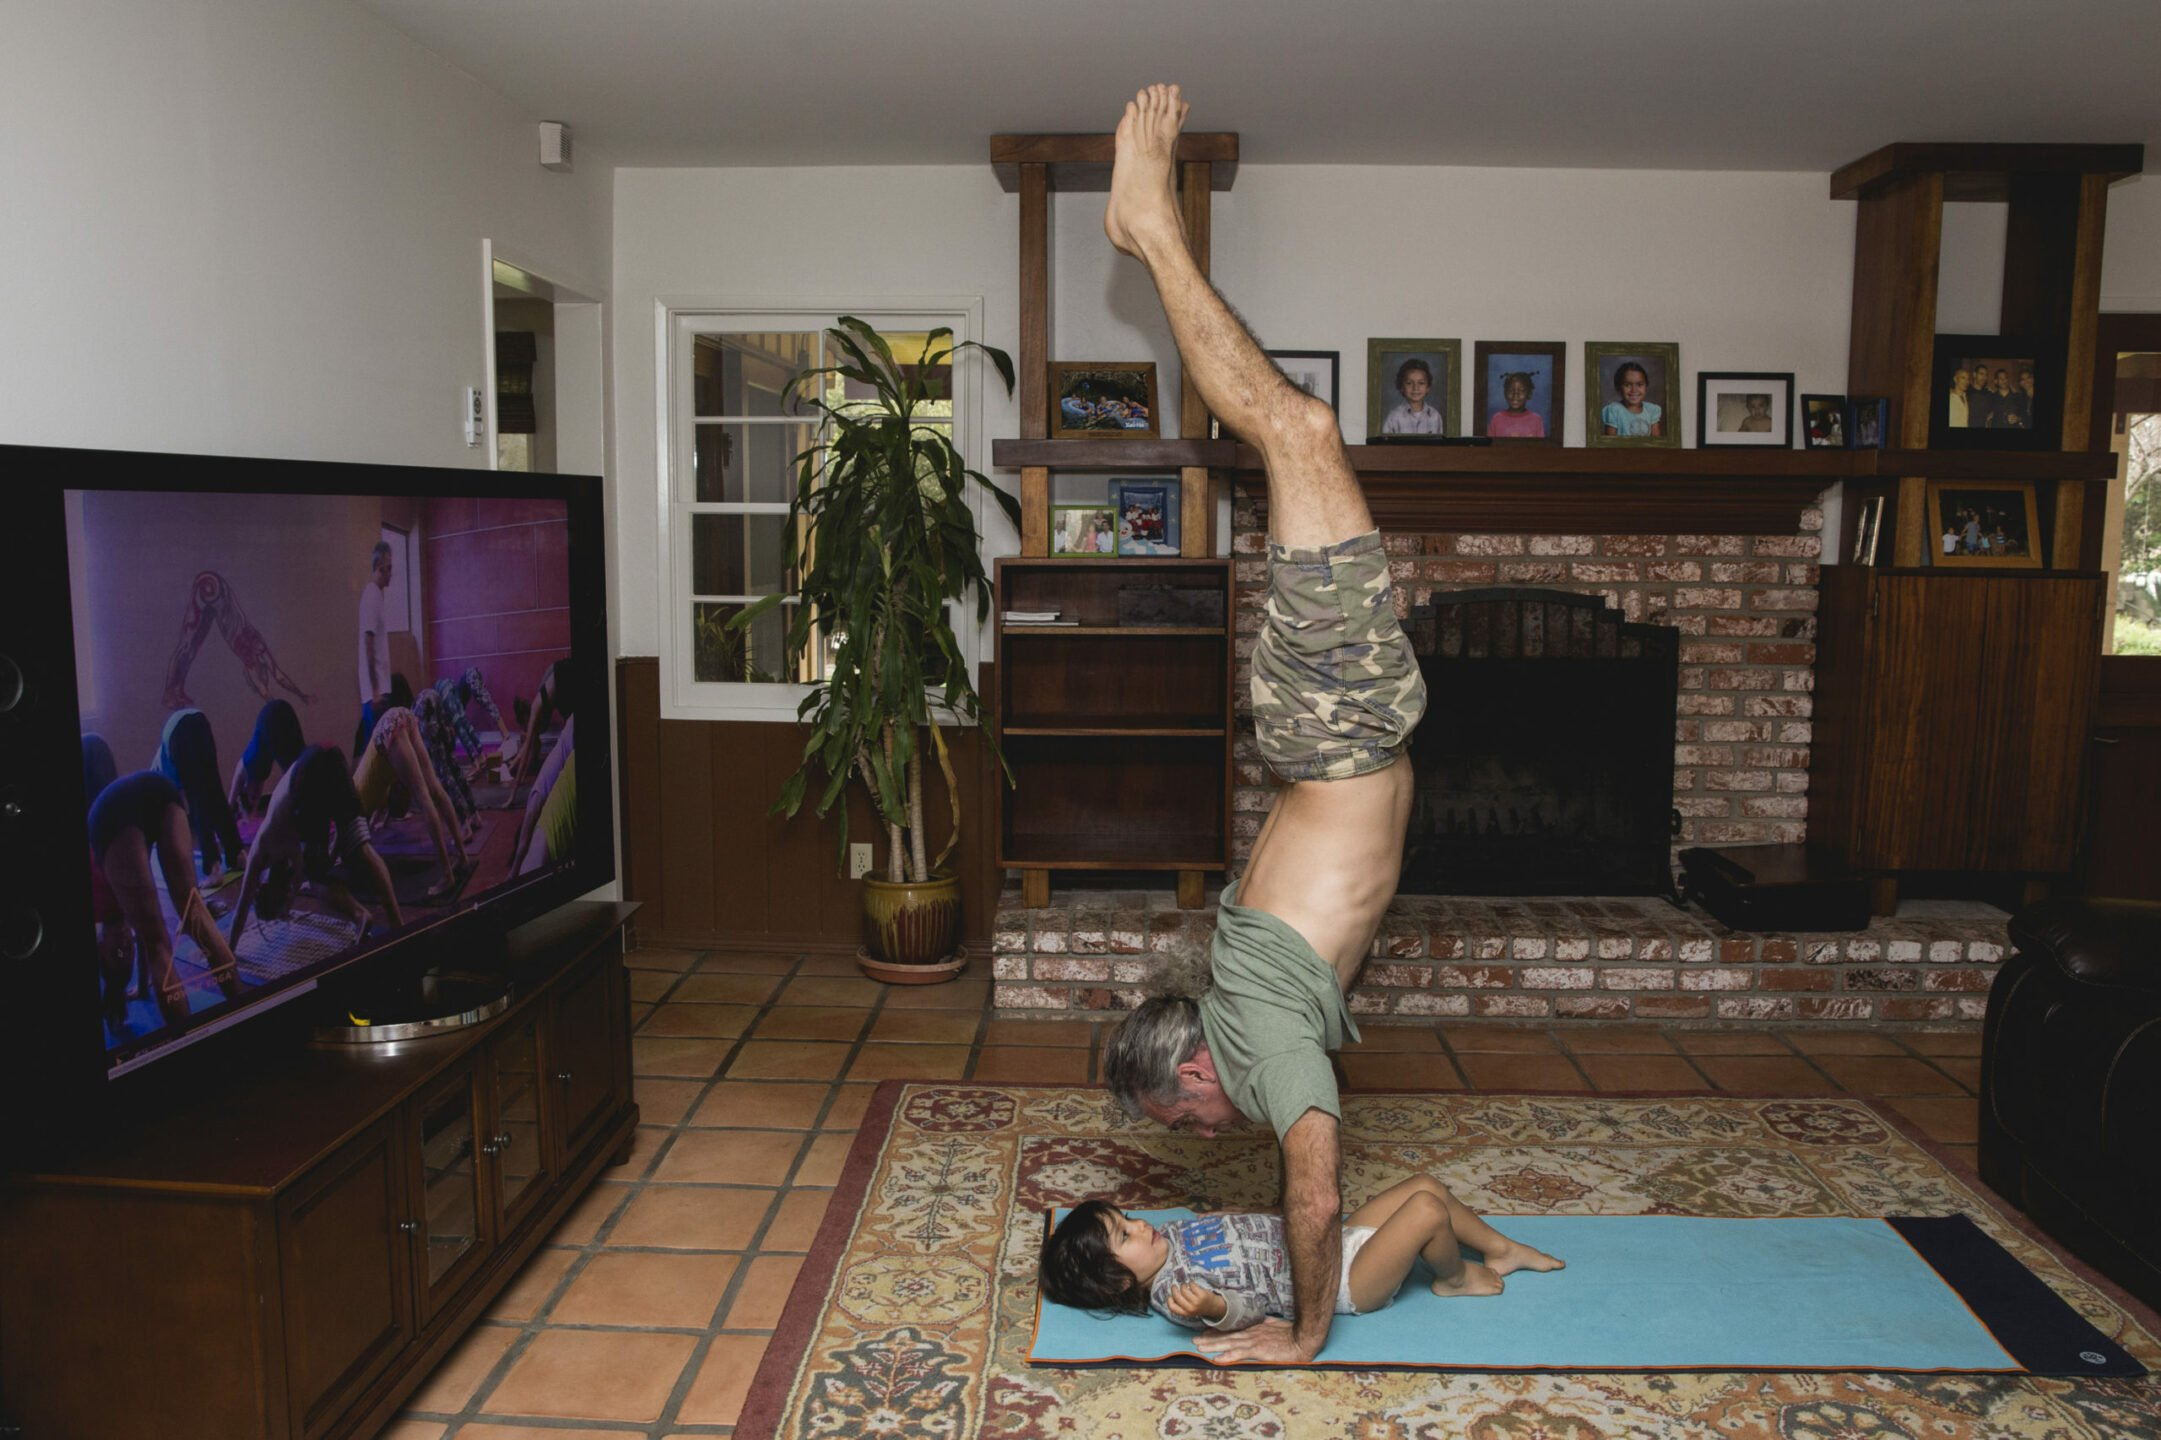 Bryan Kest doing handstand over a child